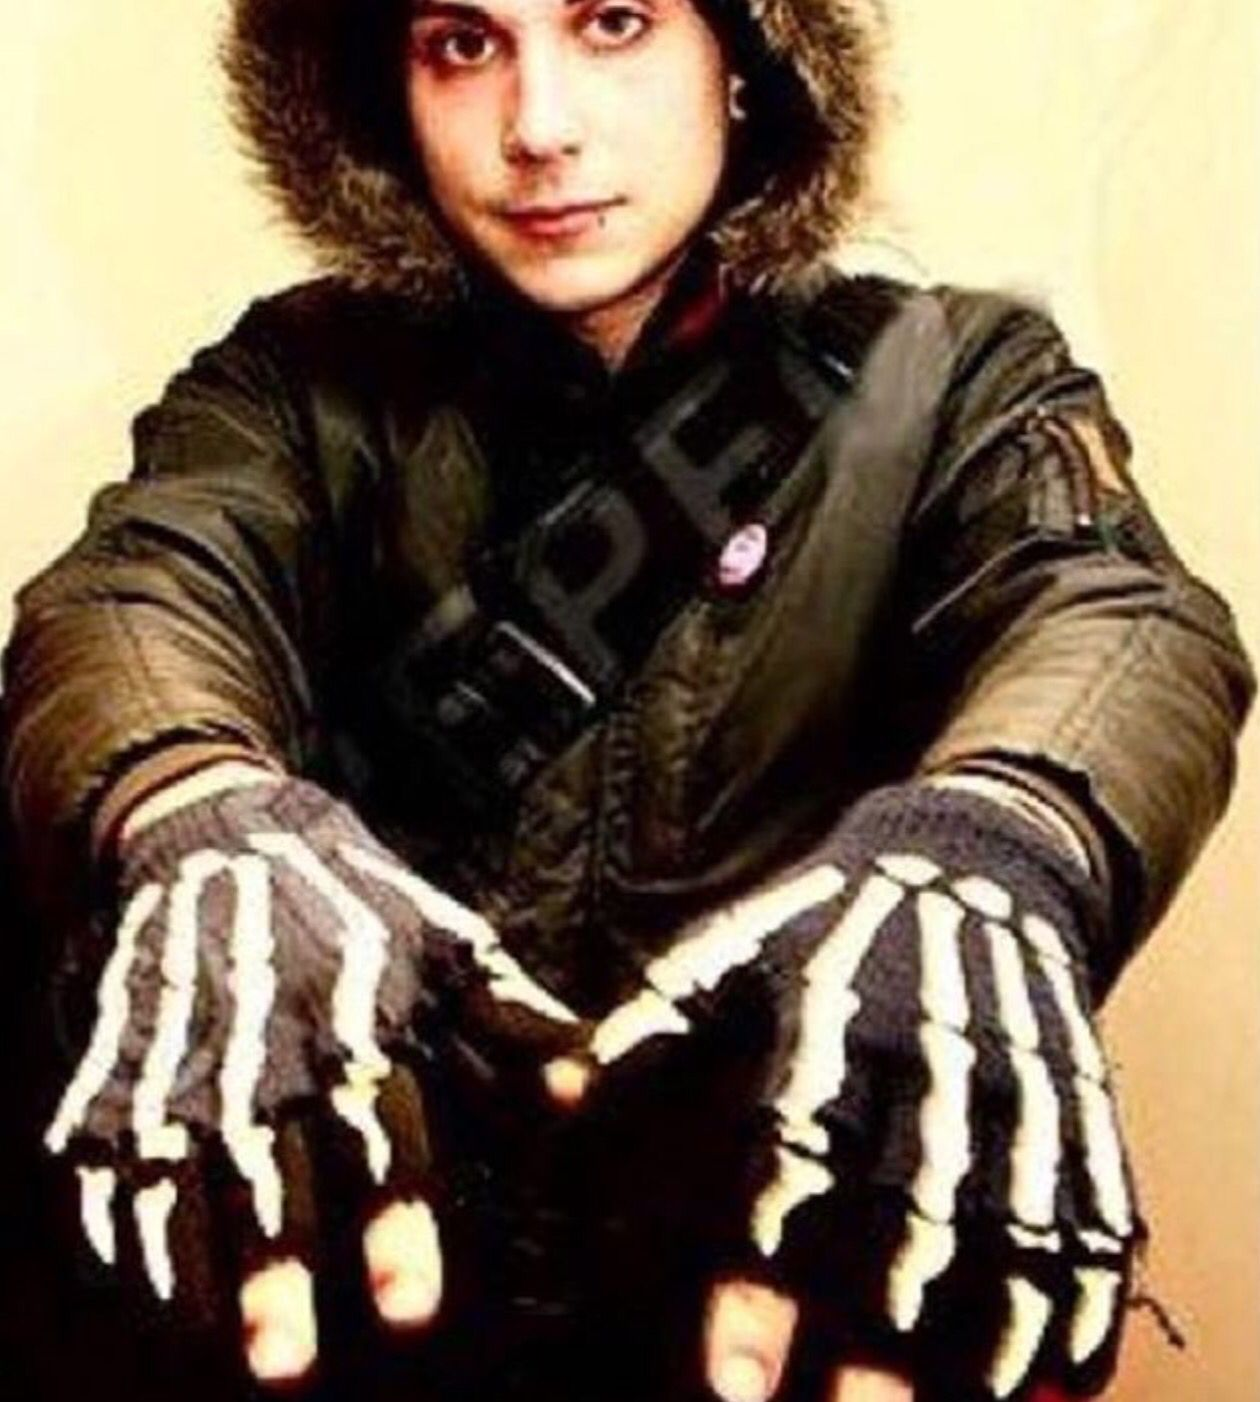 we have the same gloves